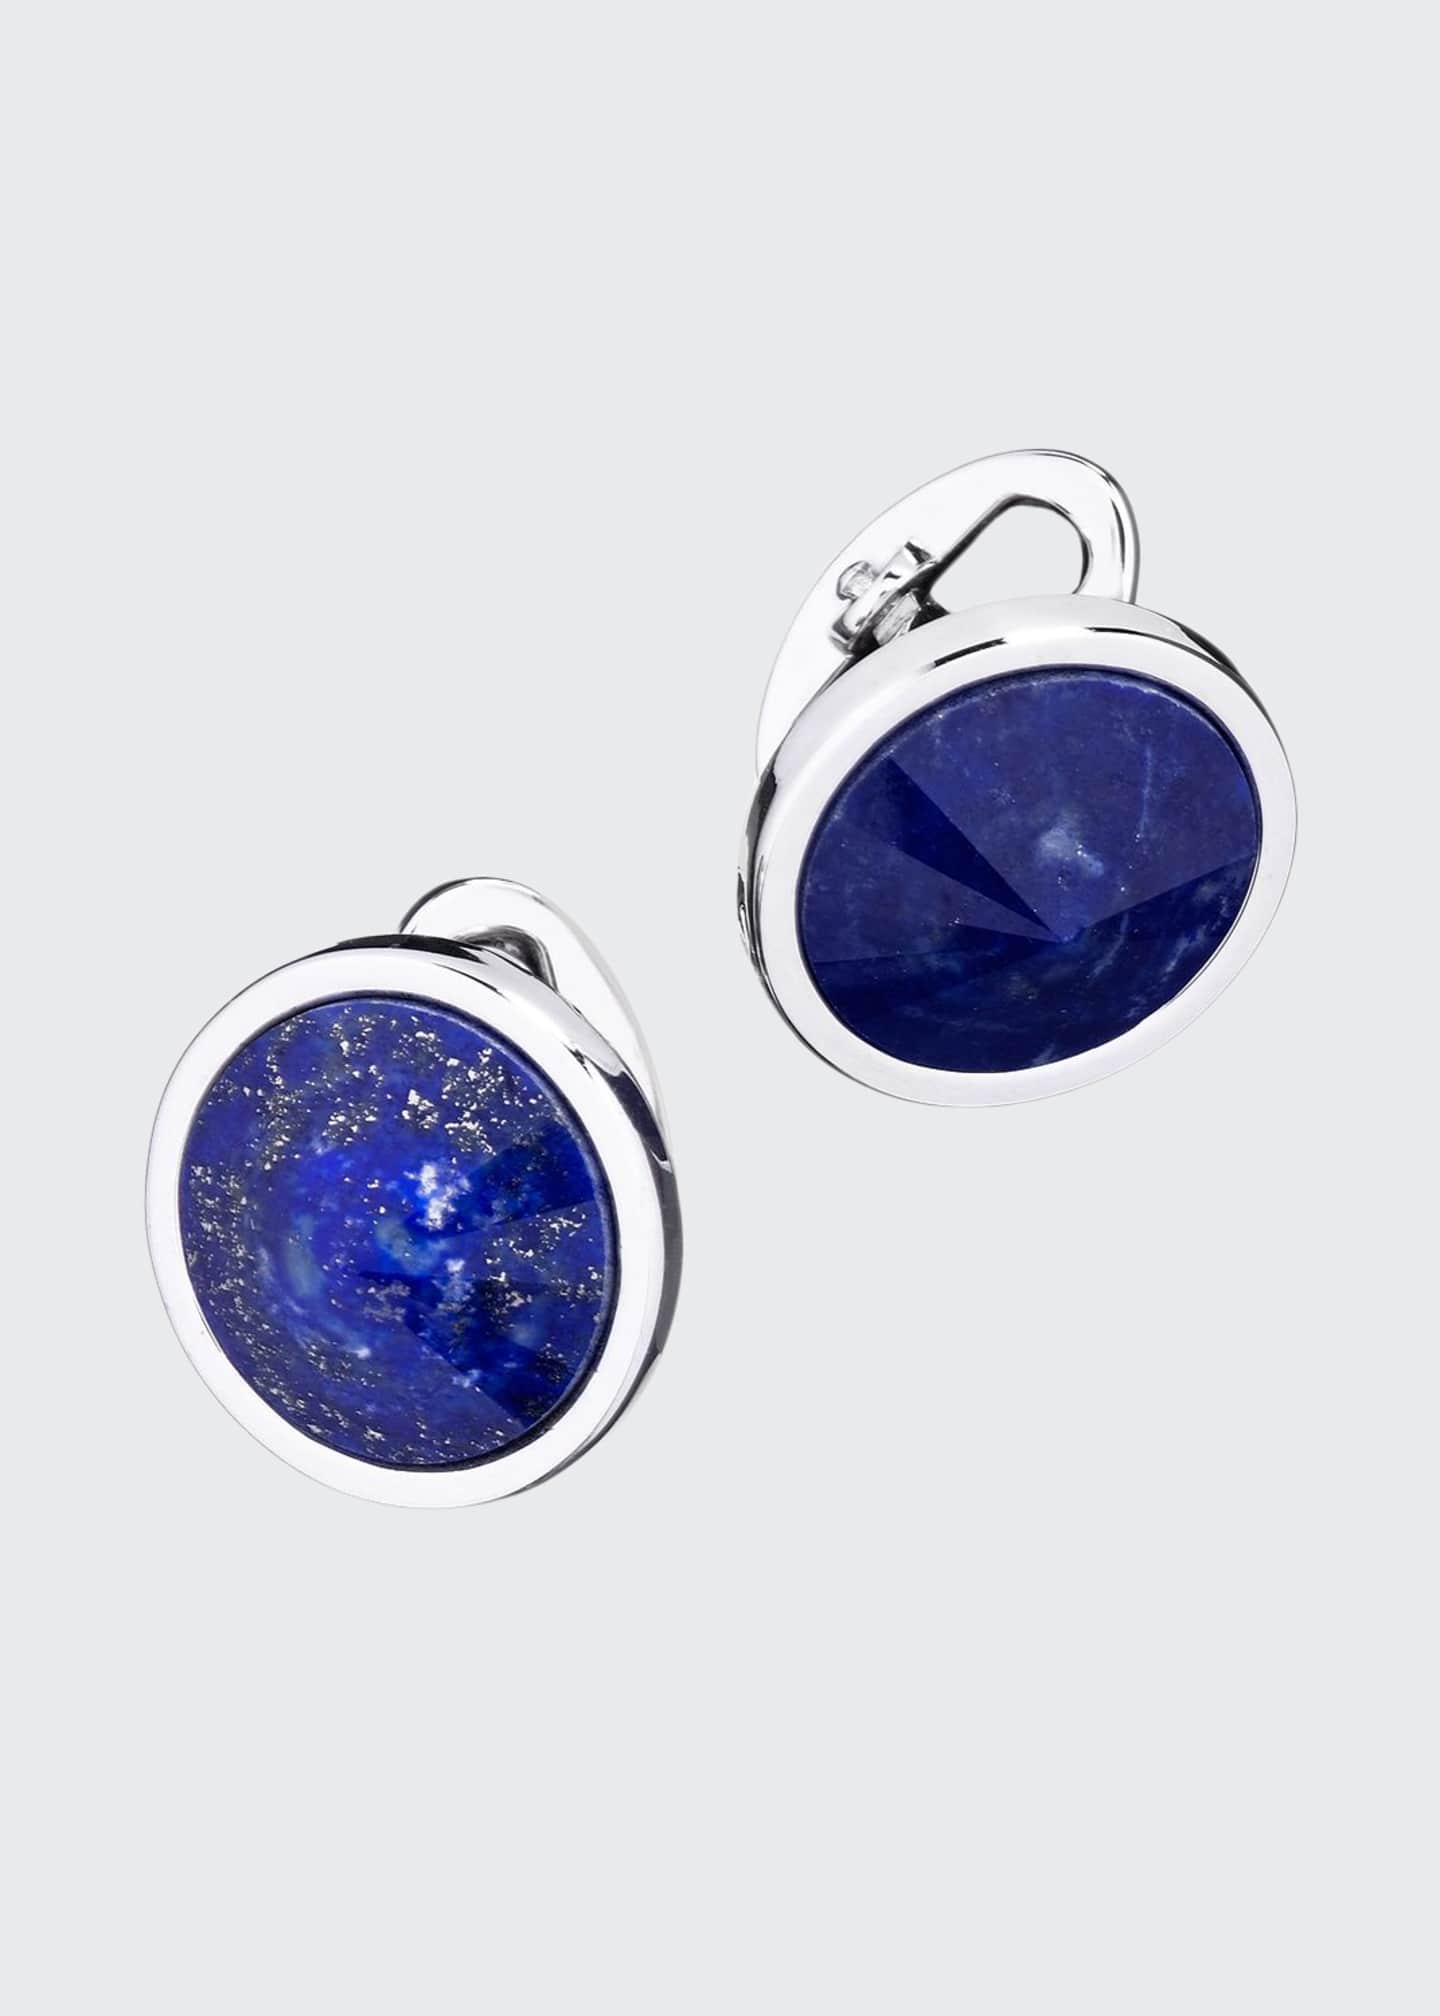 Jan Leslie Pyramid Sphere Cuff Links with Lapis